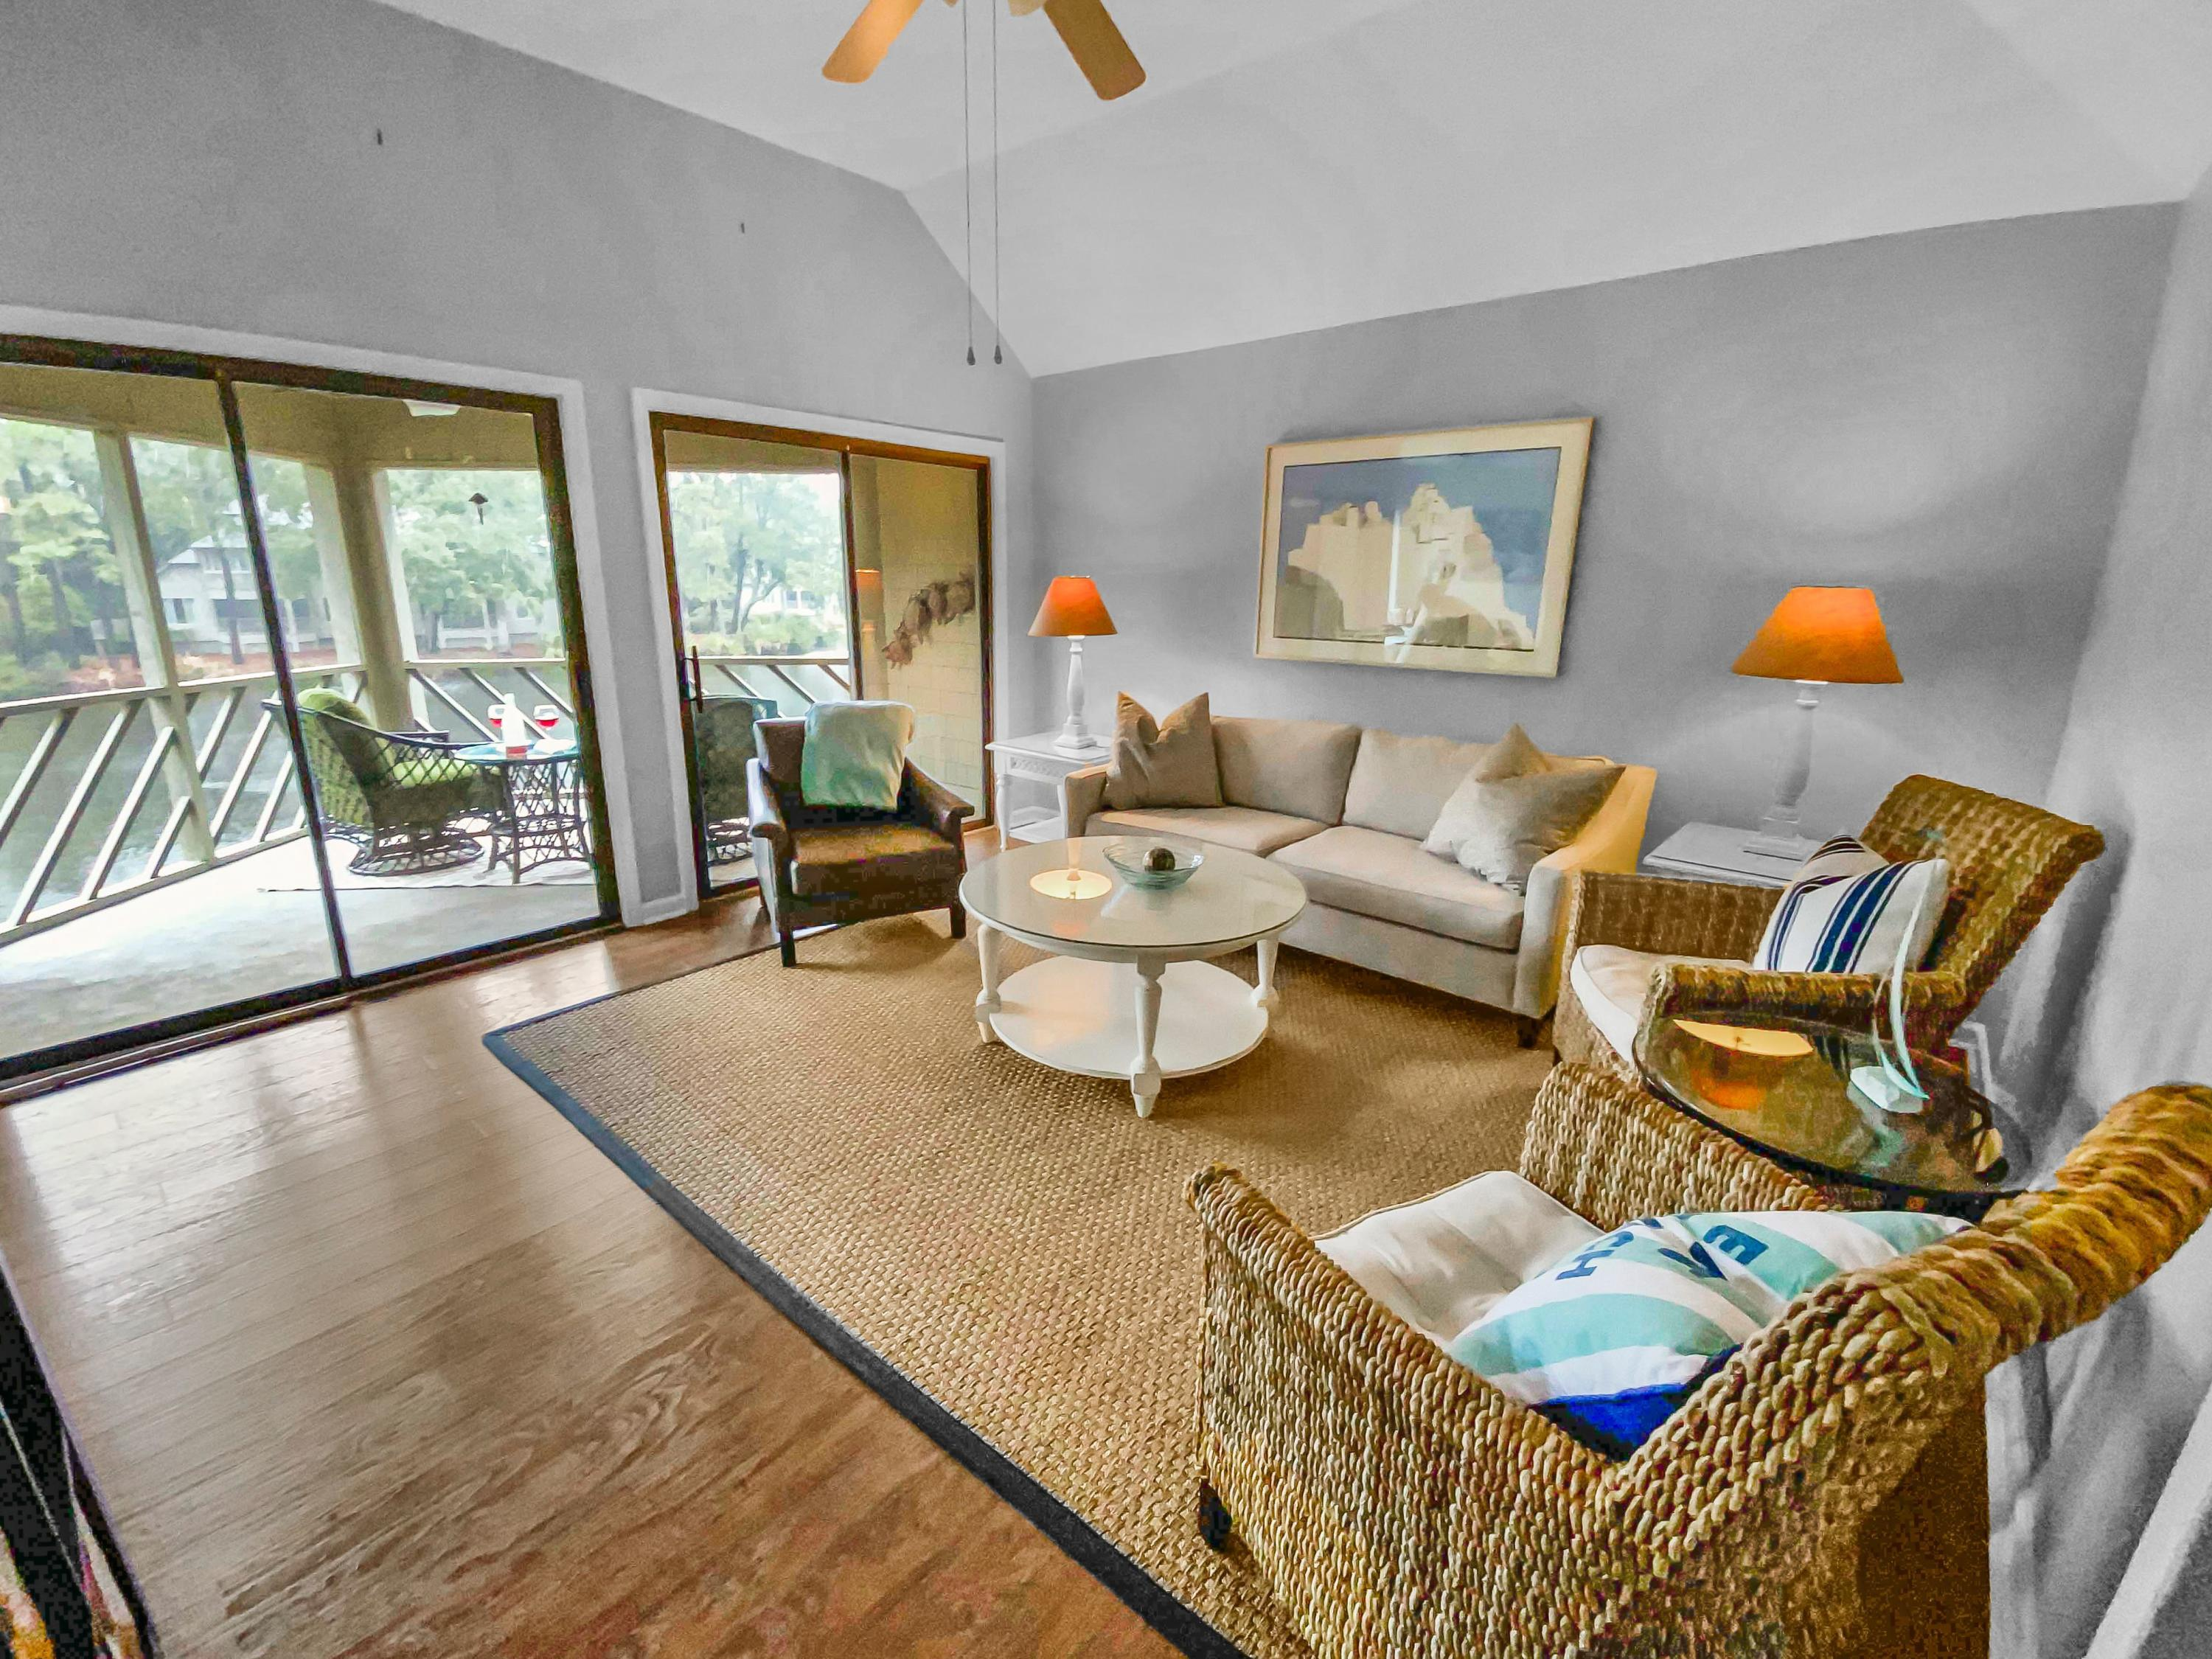 Kiawah Island Condos For Sale - 4676 Tennis Club Villas, Kiawah Island, SC - 11